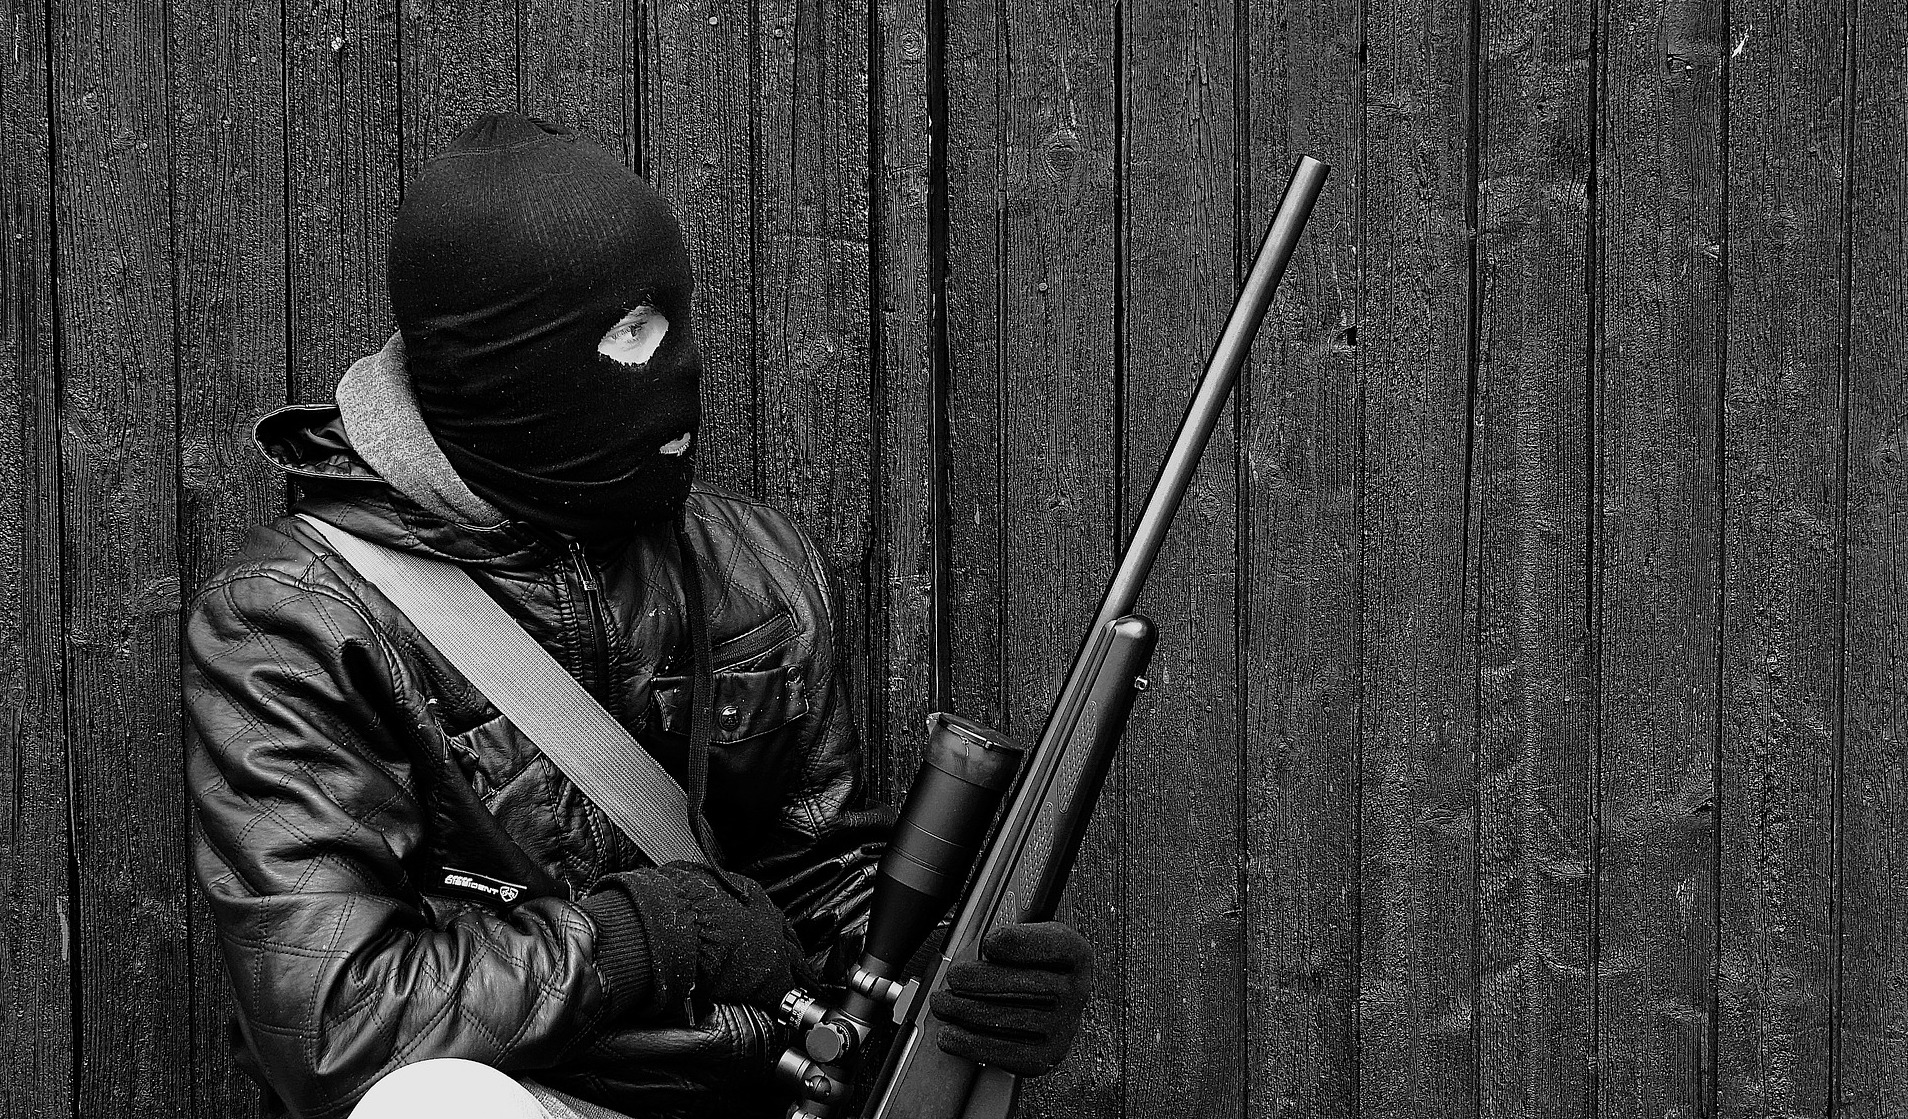 In the Eye of the Beholder: Parochial Altruism, Radicalization, and Extremism